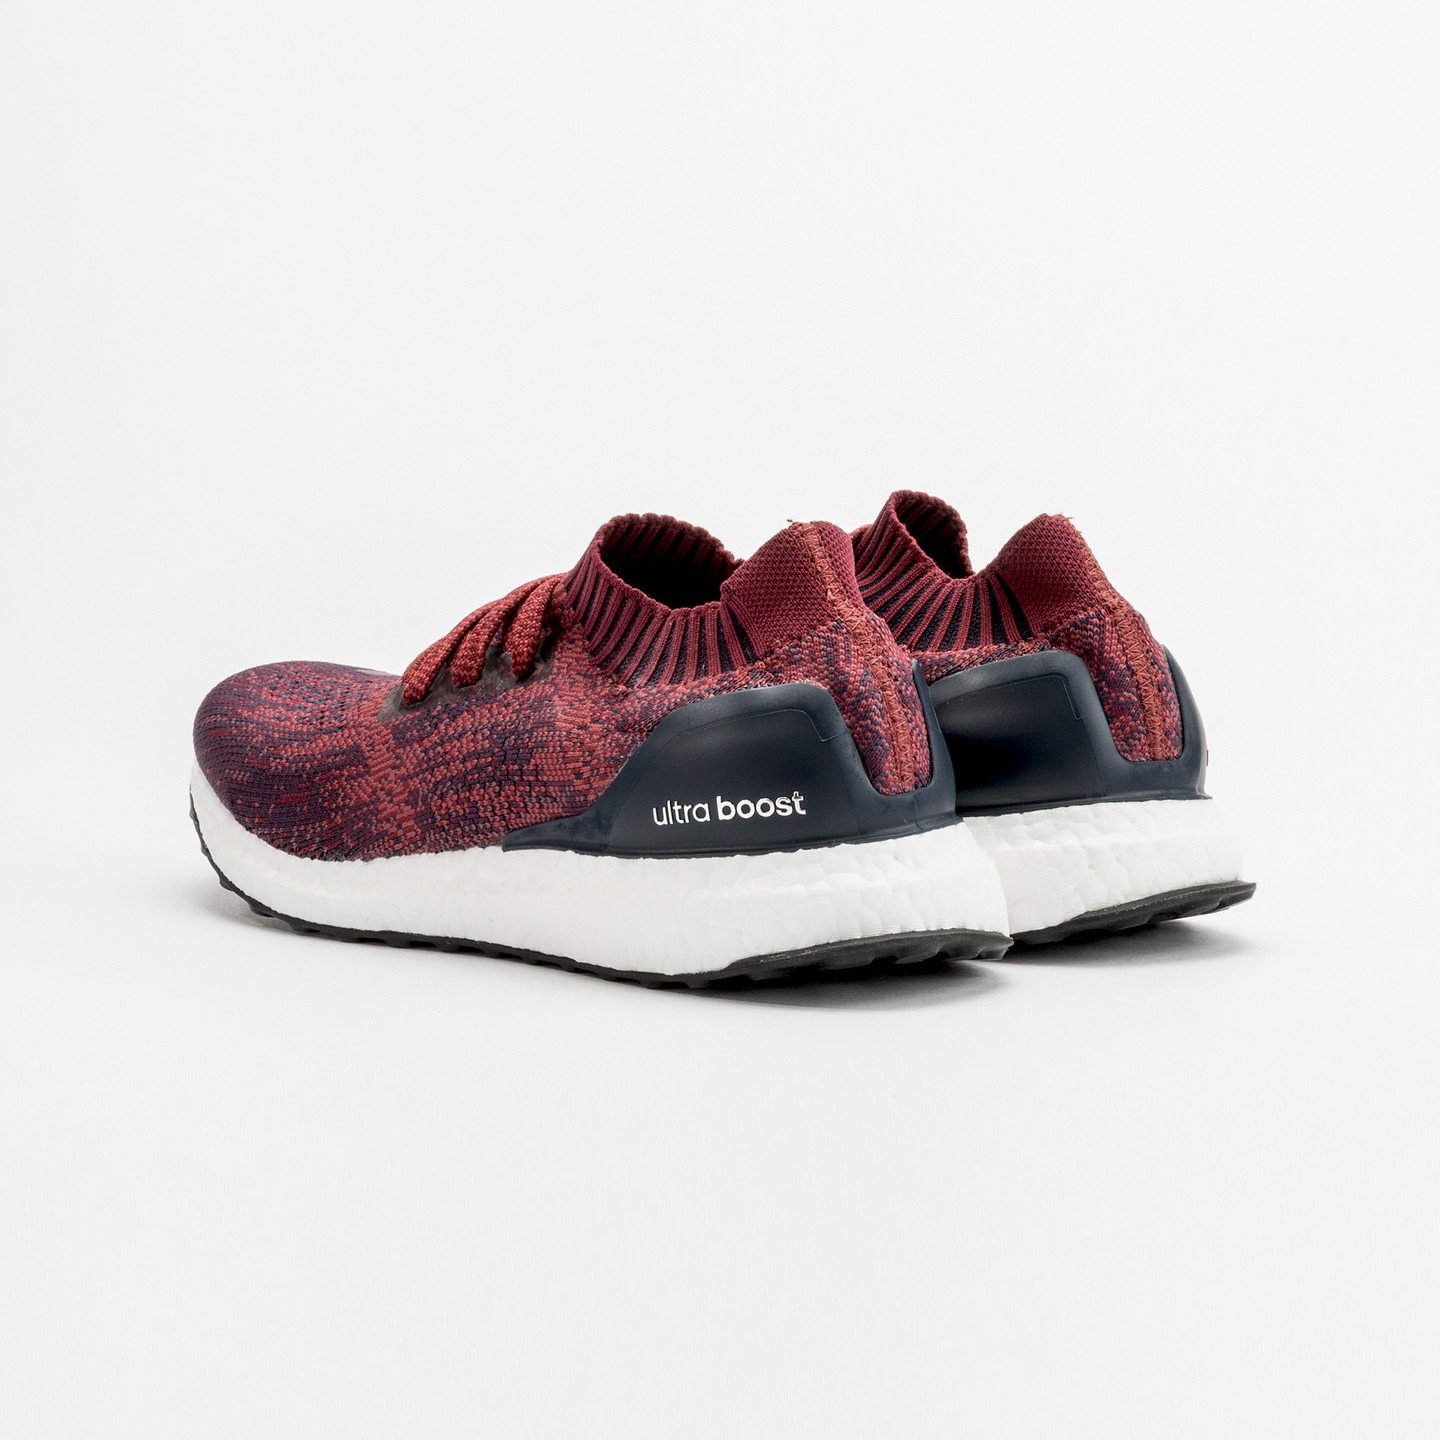 Adidas Ultra Boost Uncaged 'Burgundy' Mystery Red / Coll. Burgundy / Coll. Navy BA9617-41.33